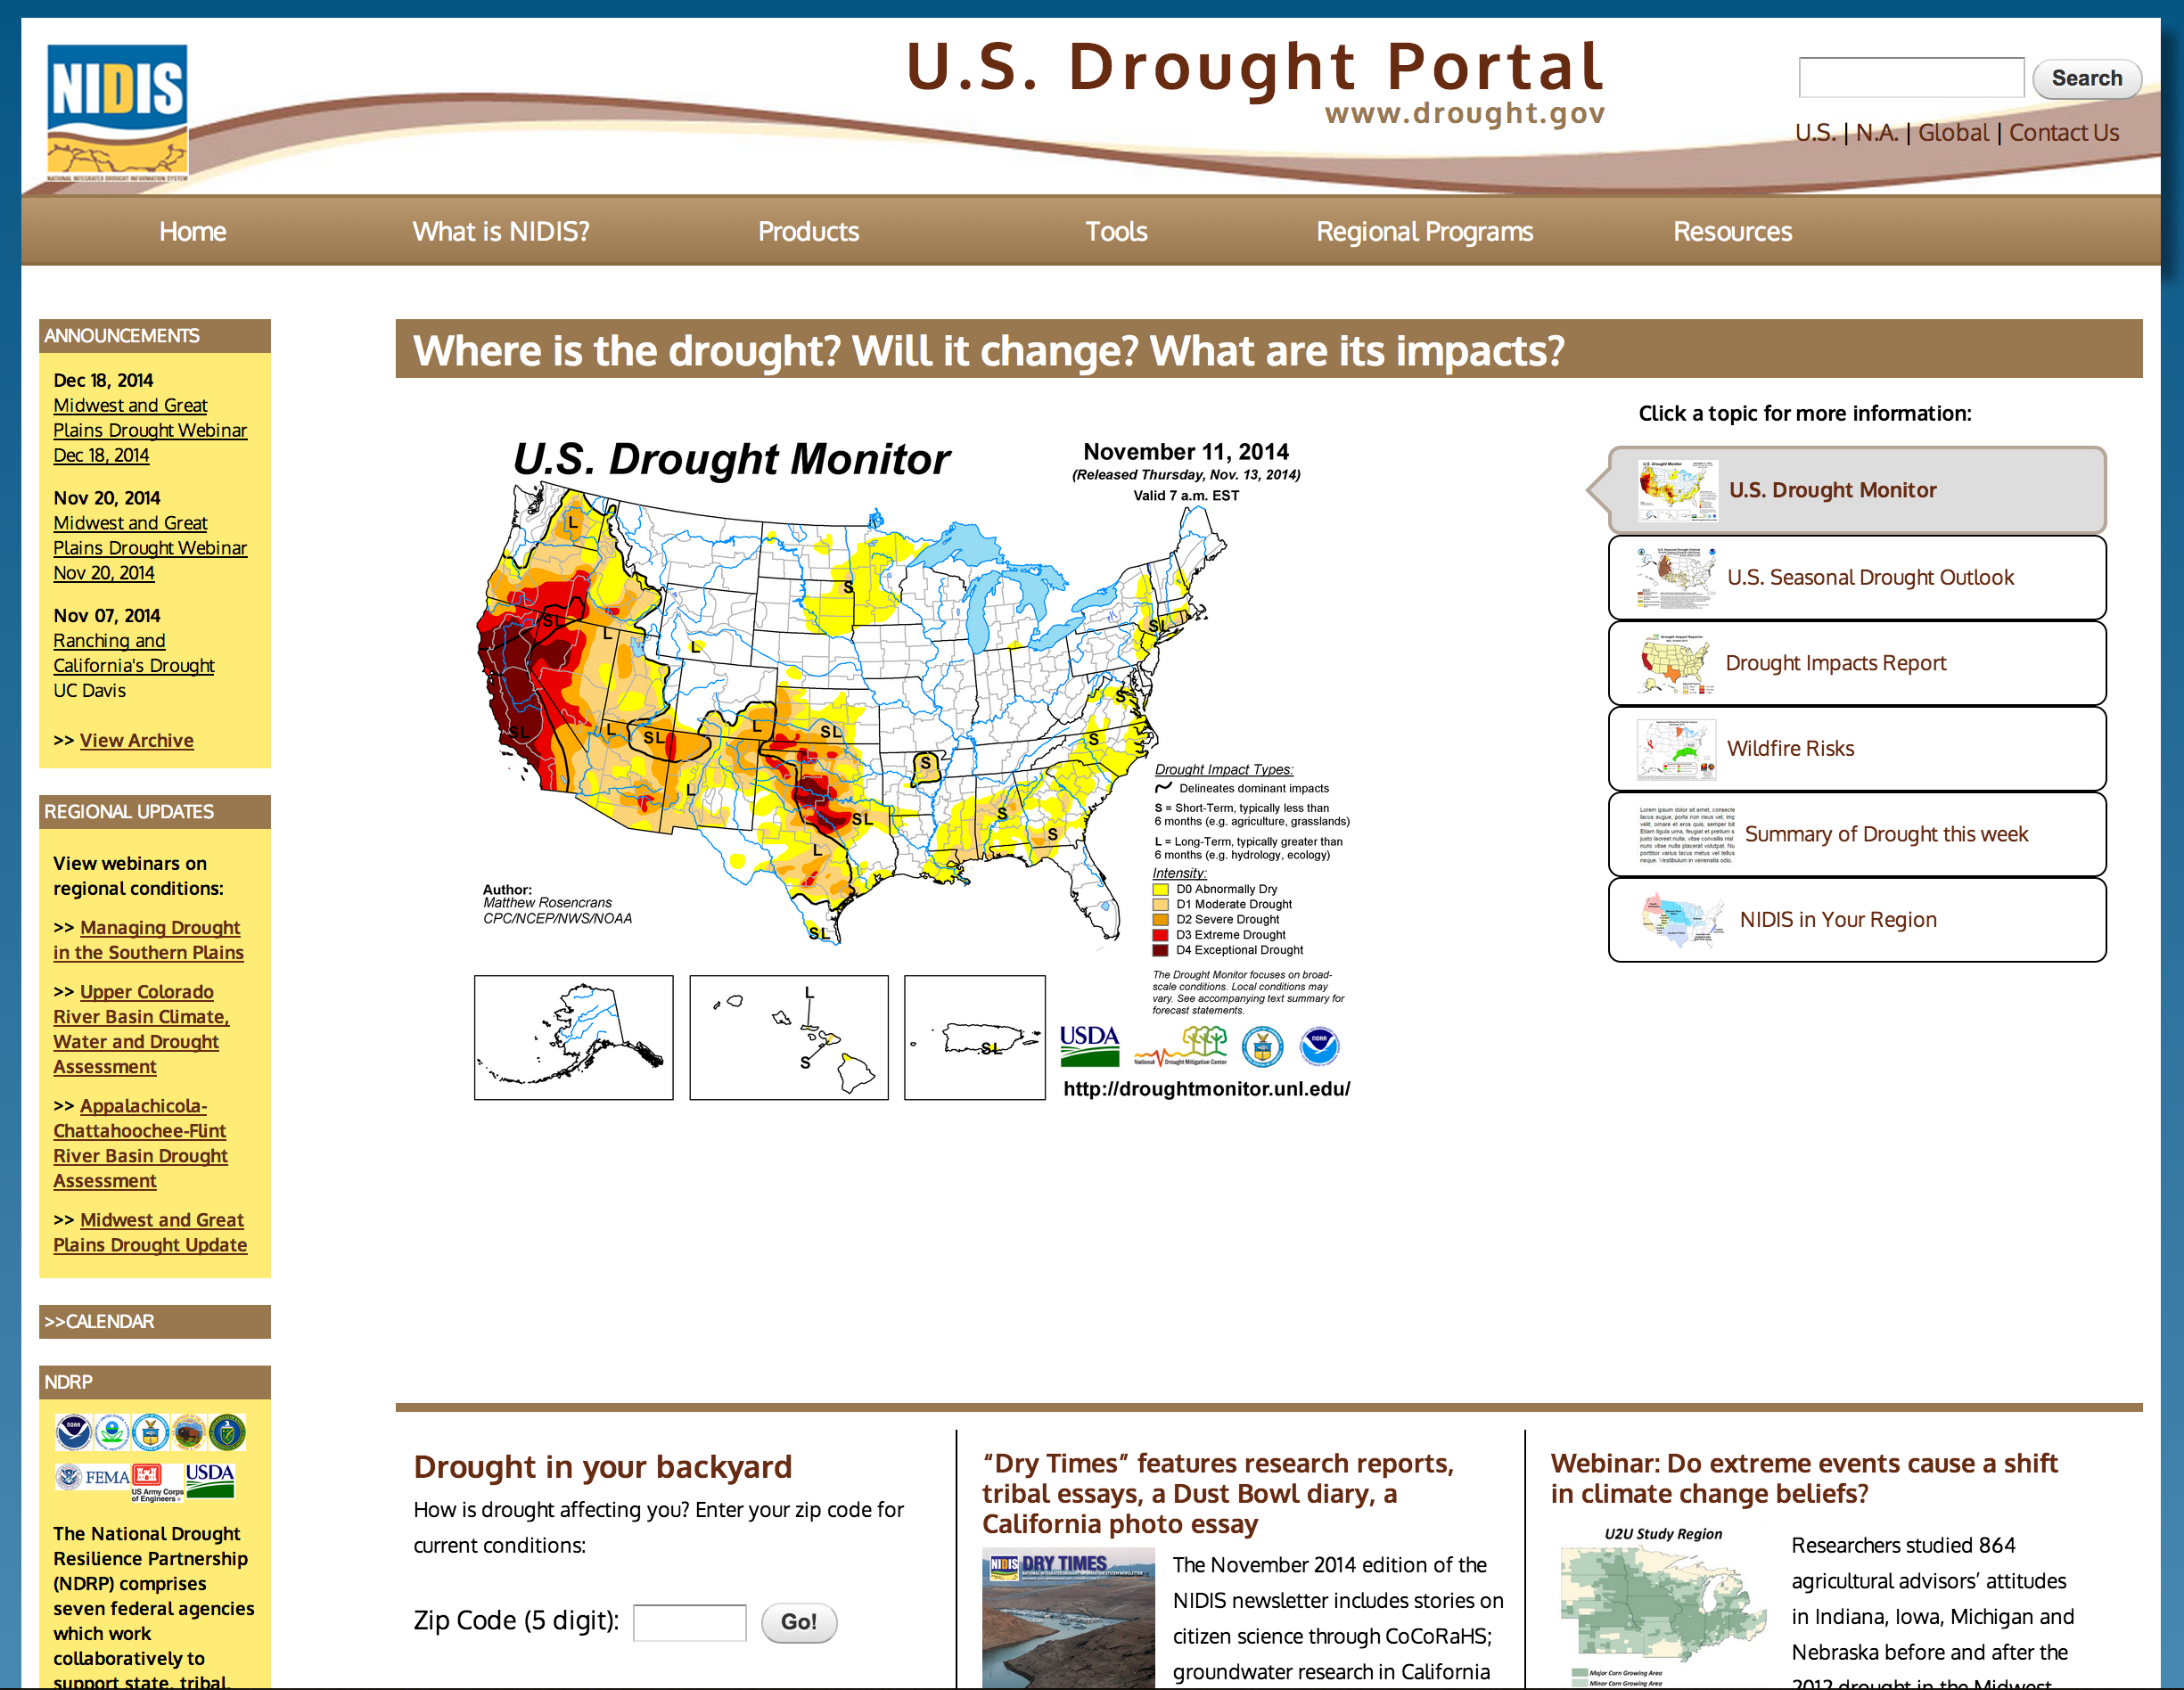 tools data gov application water resource managers and community and urban planners can use the information to prepare for onsets of drought and to create long term